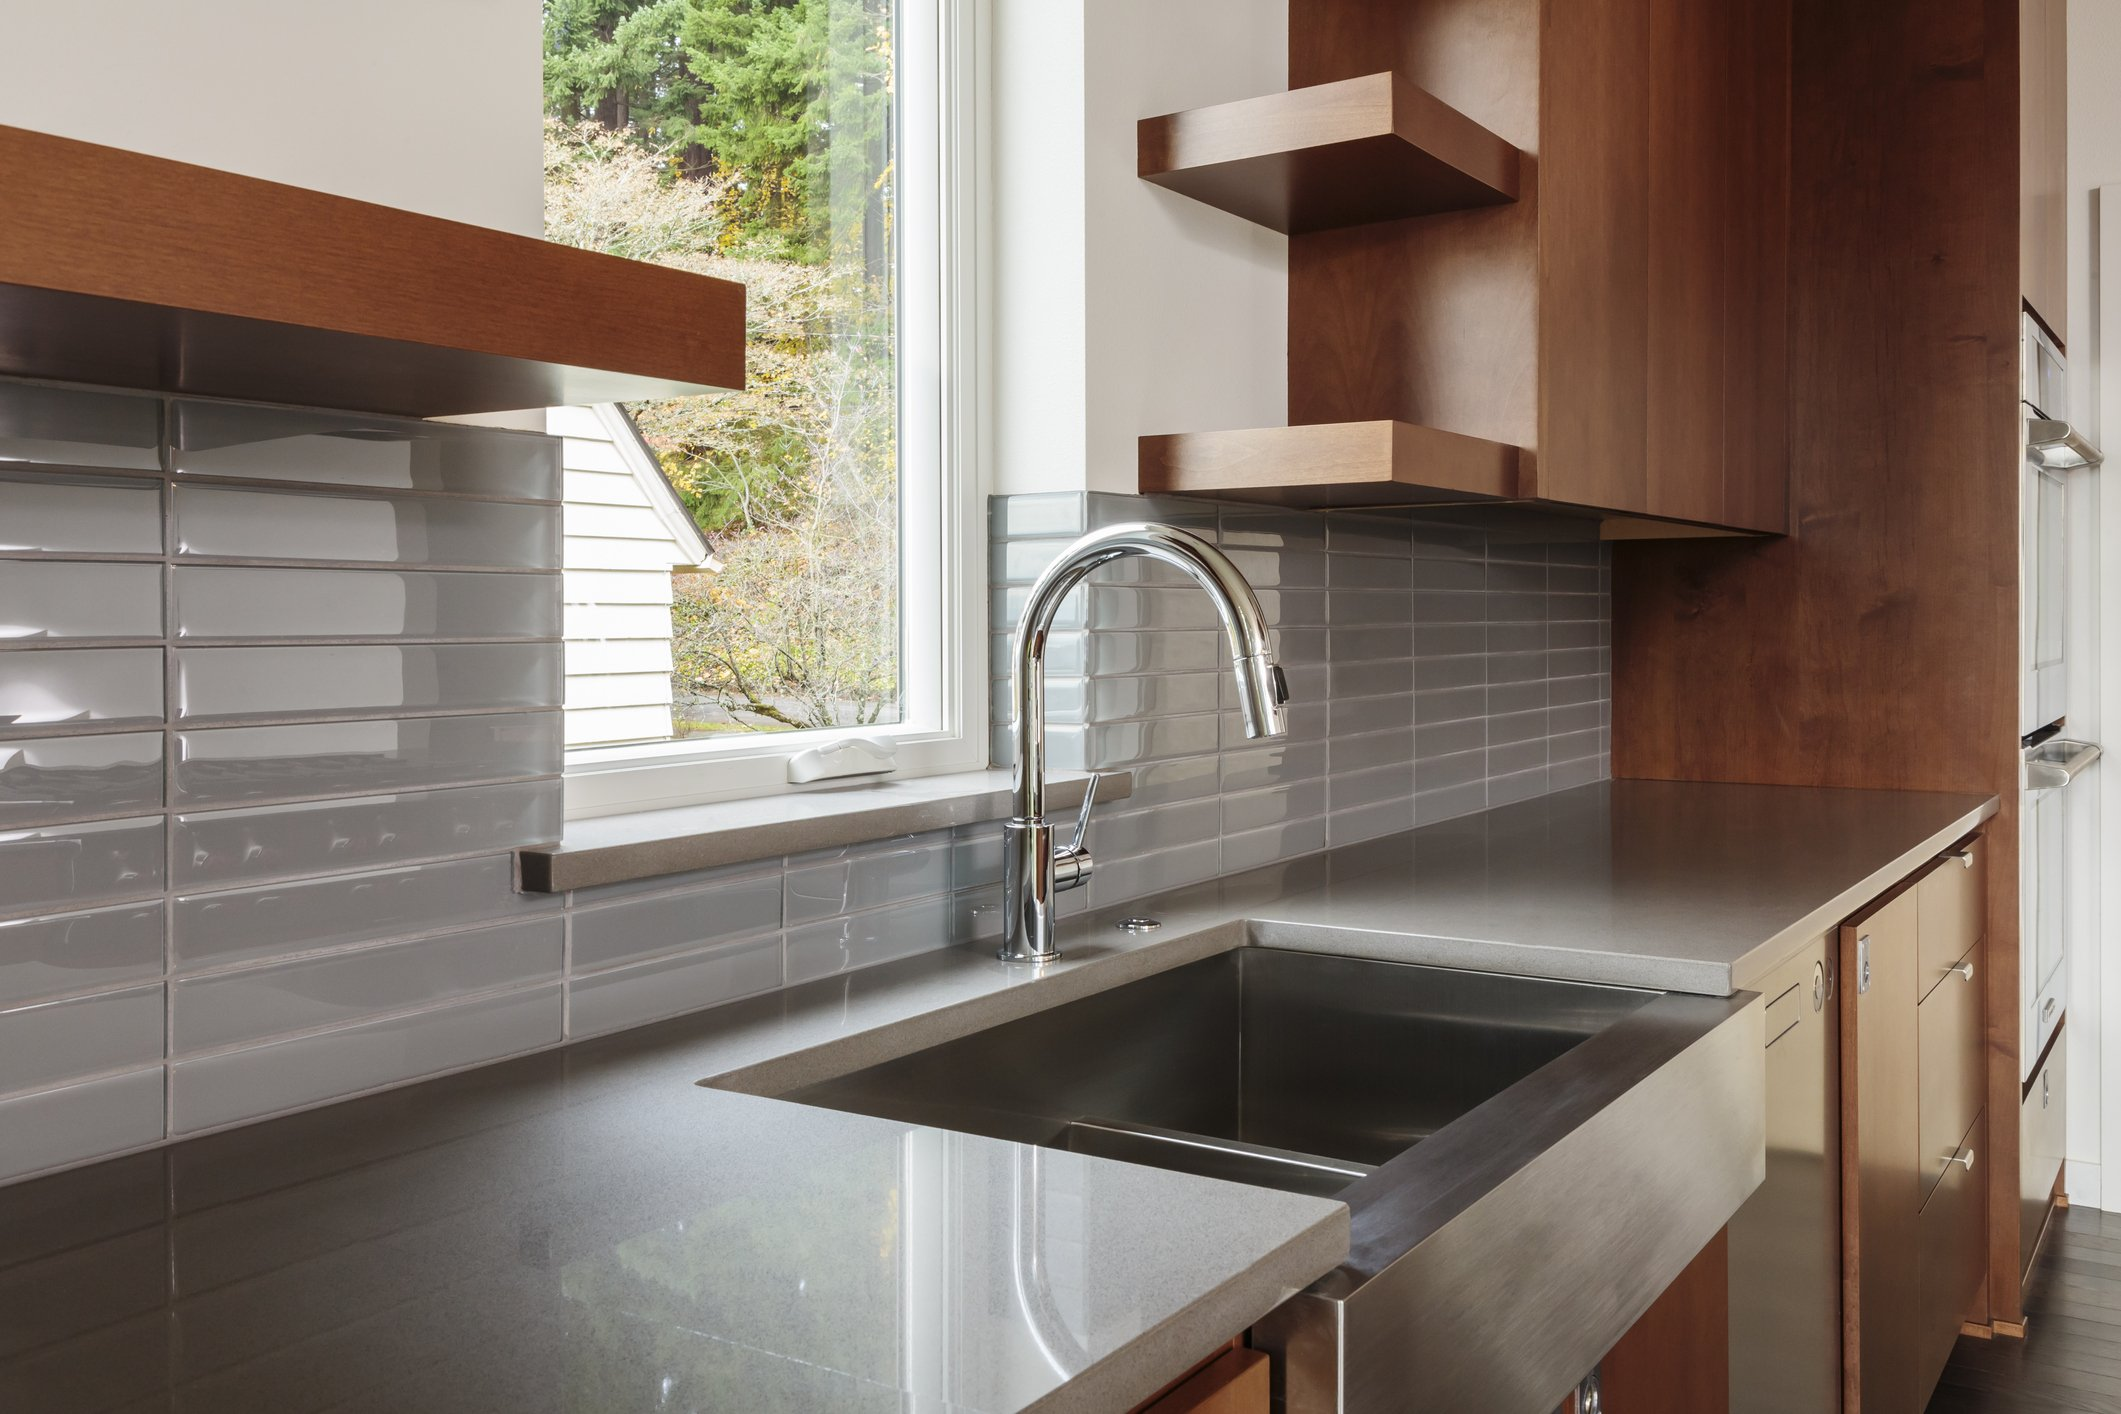 kitchen countertop trends aid mixer attachments the best to try if you hate granite